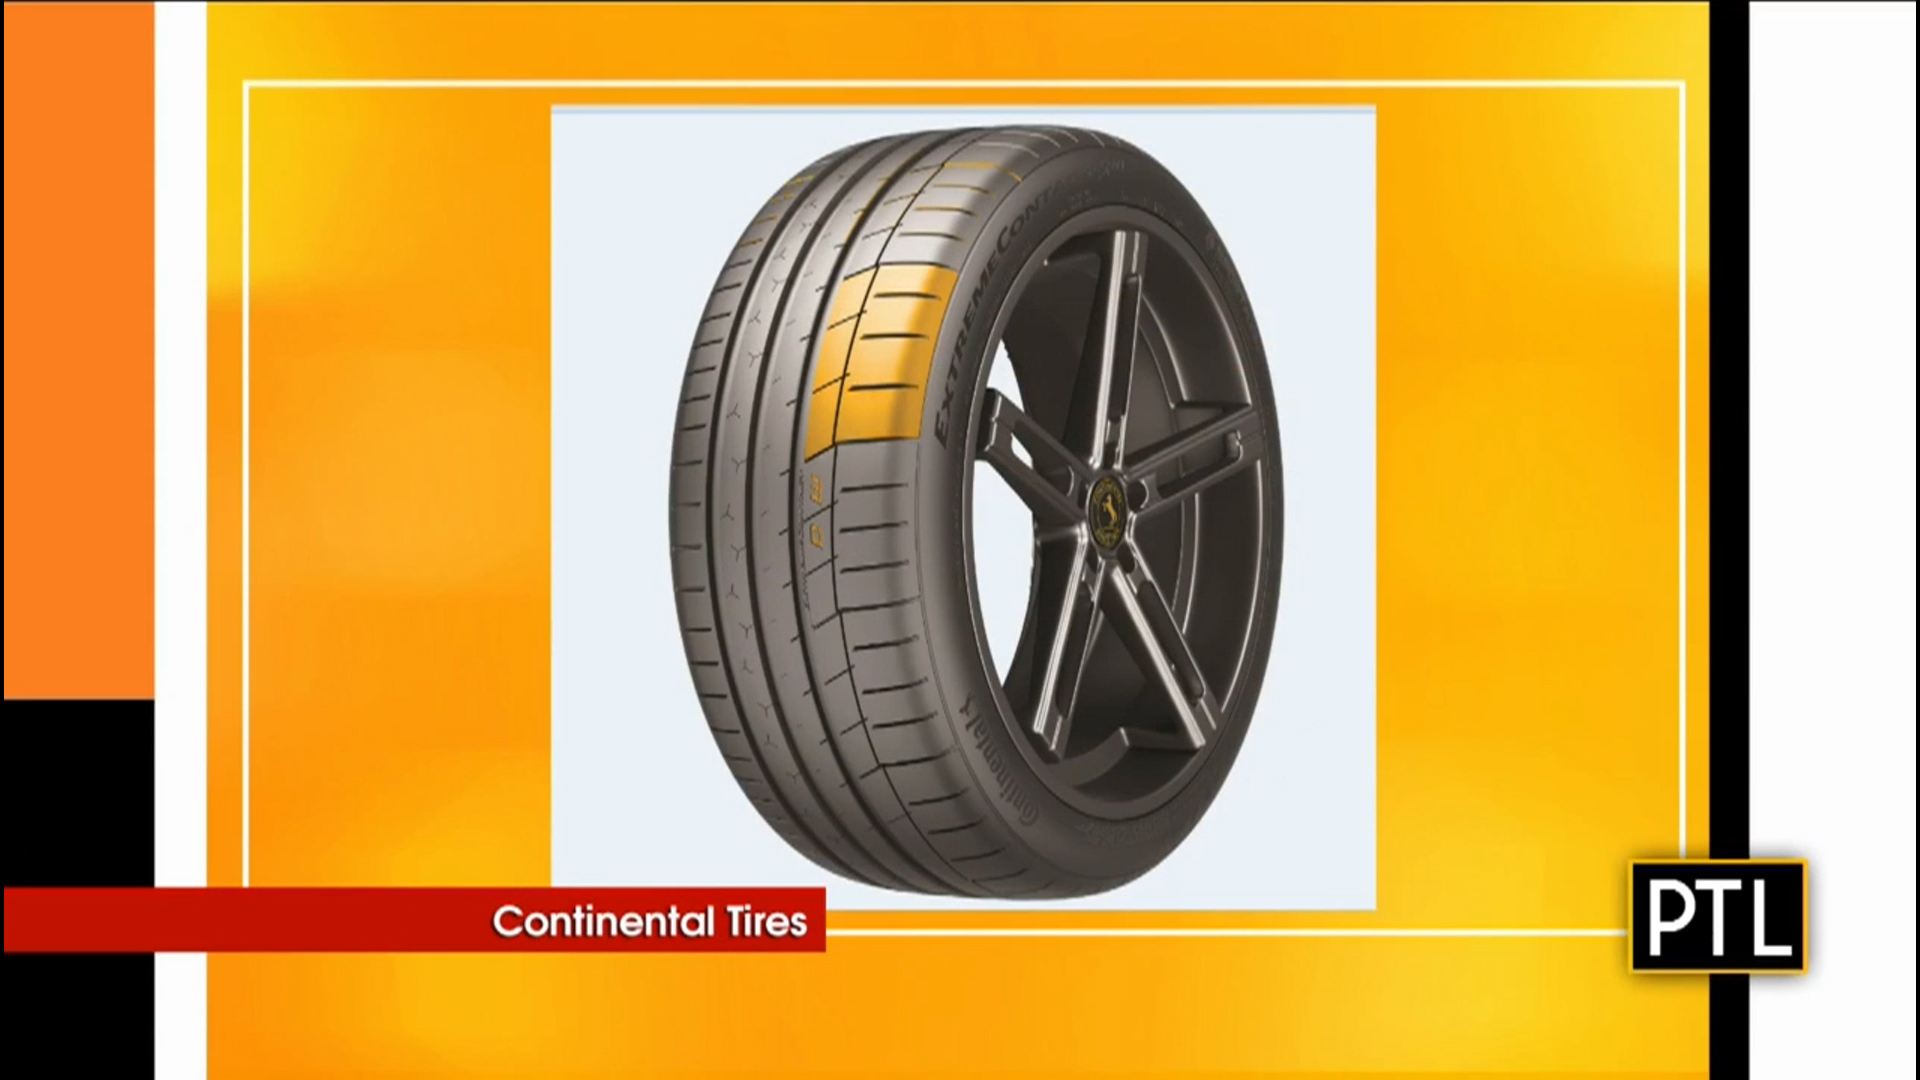 CONTINENTAL EXTREMESPORT TIRES - Price varies by sizeShop Now